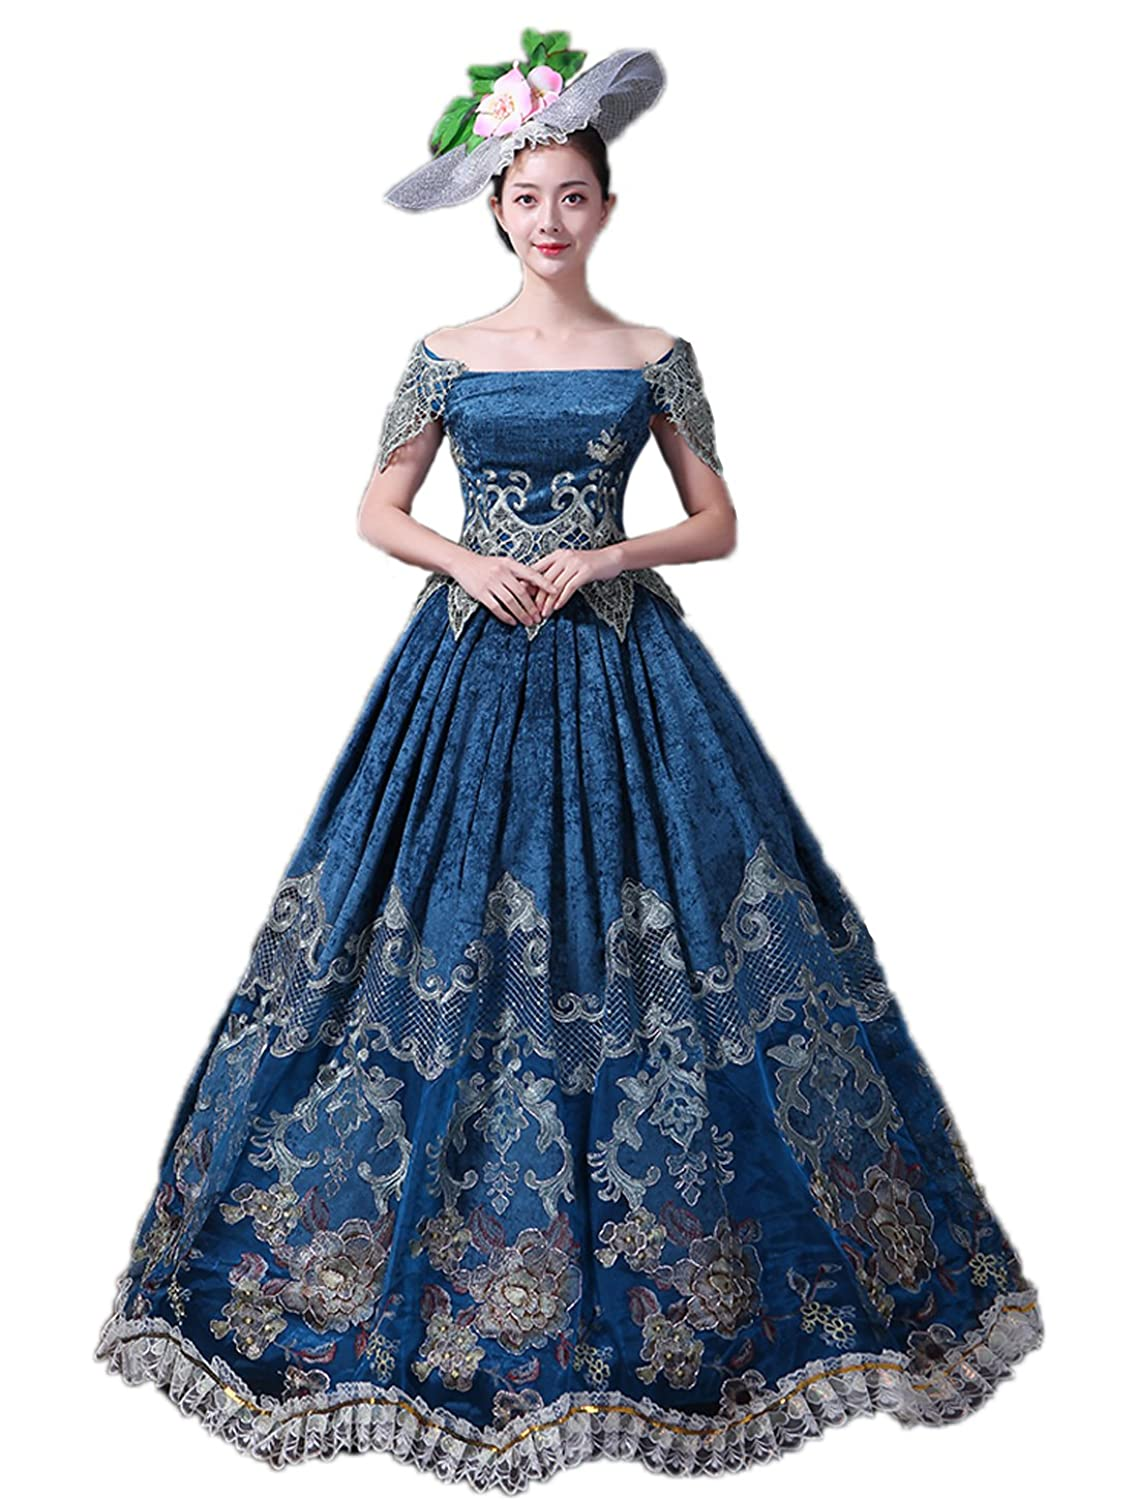 Victorian Dresses | Victorian Ballgowns | Victorian Clothing Zukzi Womens Plus Size Elegant Recoco Victorian Dress Costume Ball Gowns $169.99 AT vintagedancer.com